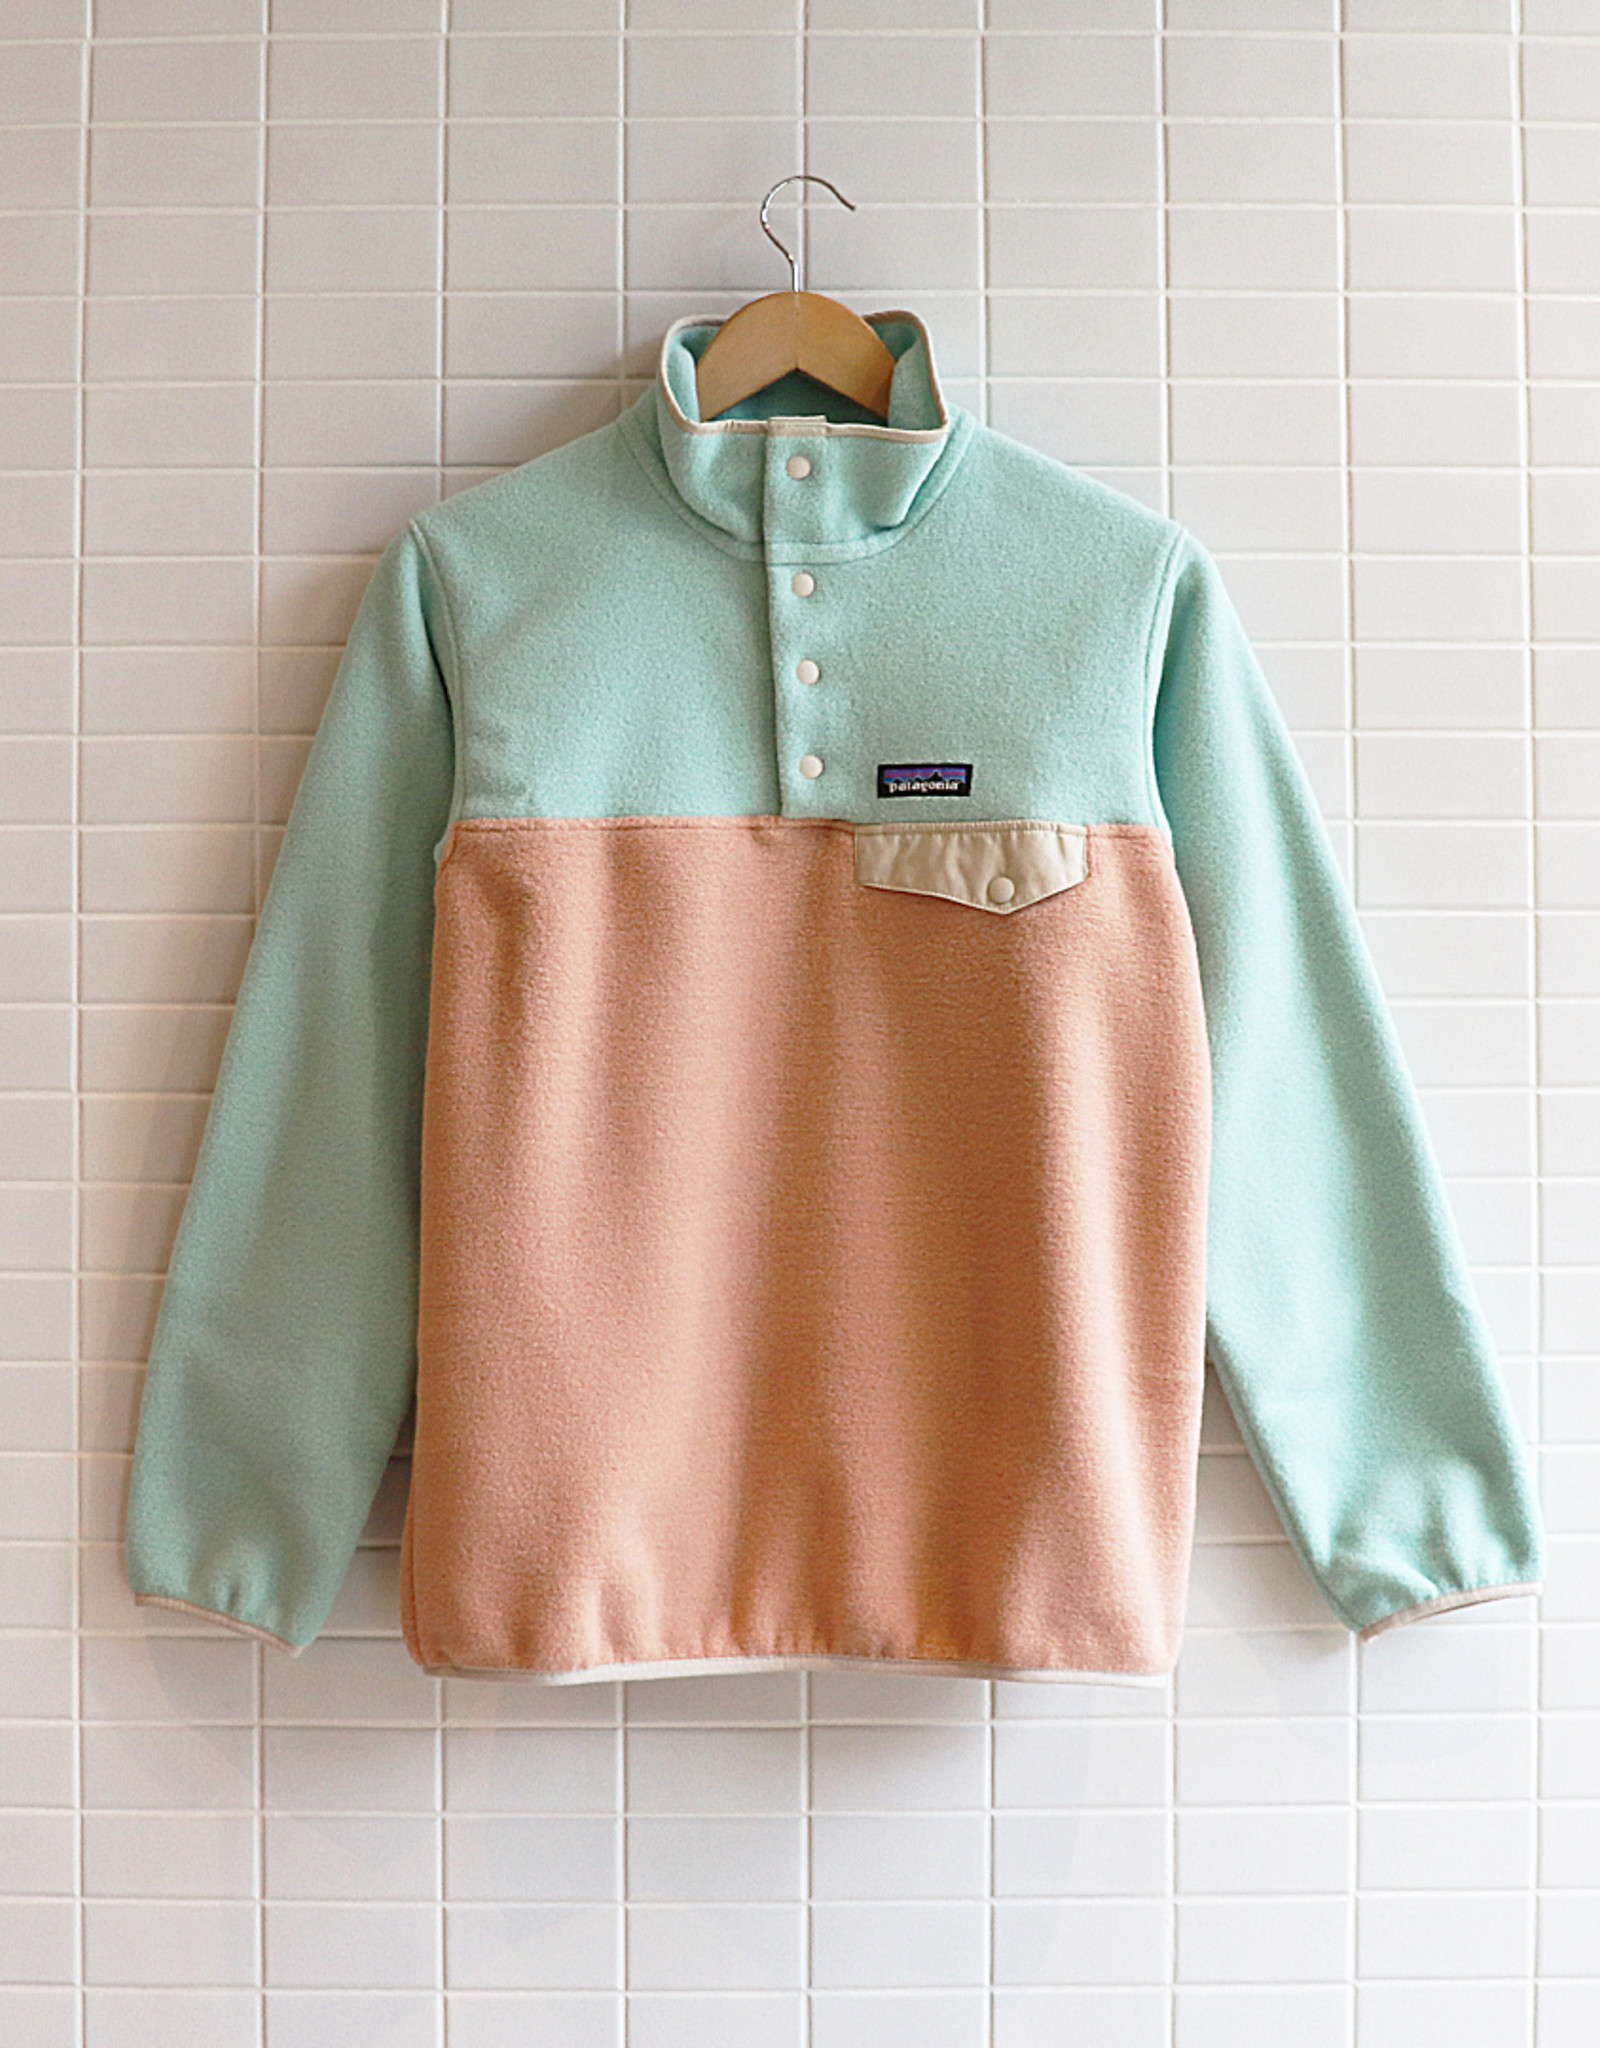 Patagonia - W's LW Synch Snap-T P/O - Scotch Pink